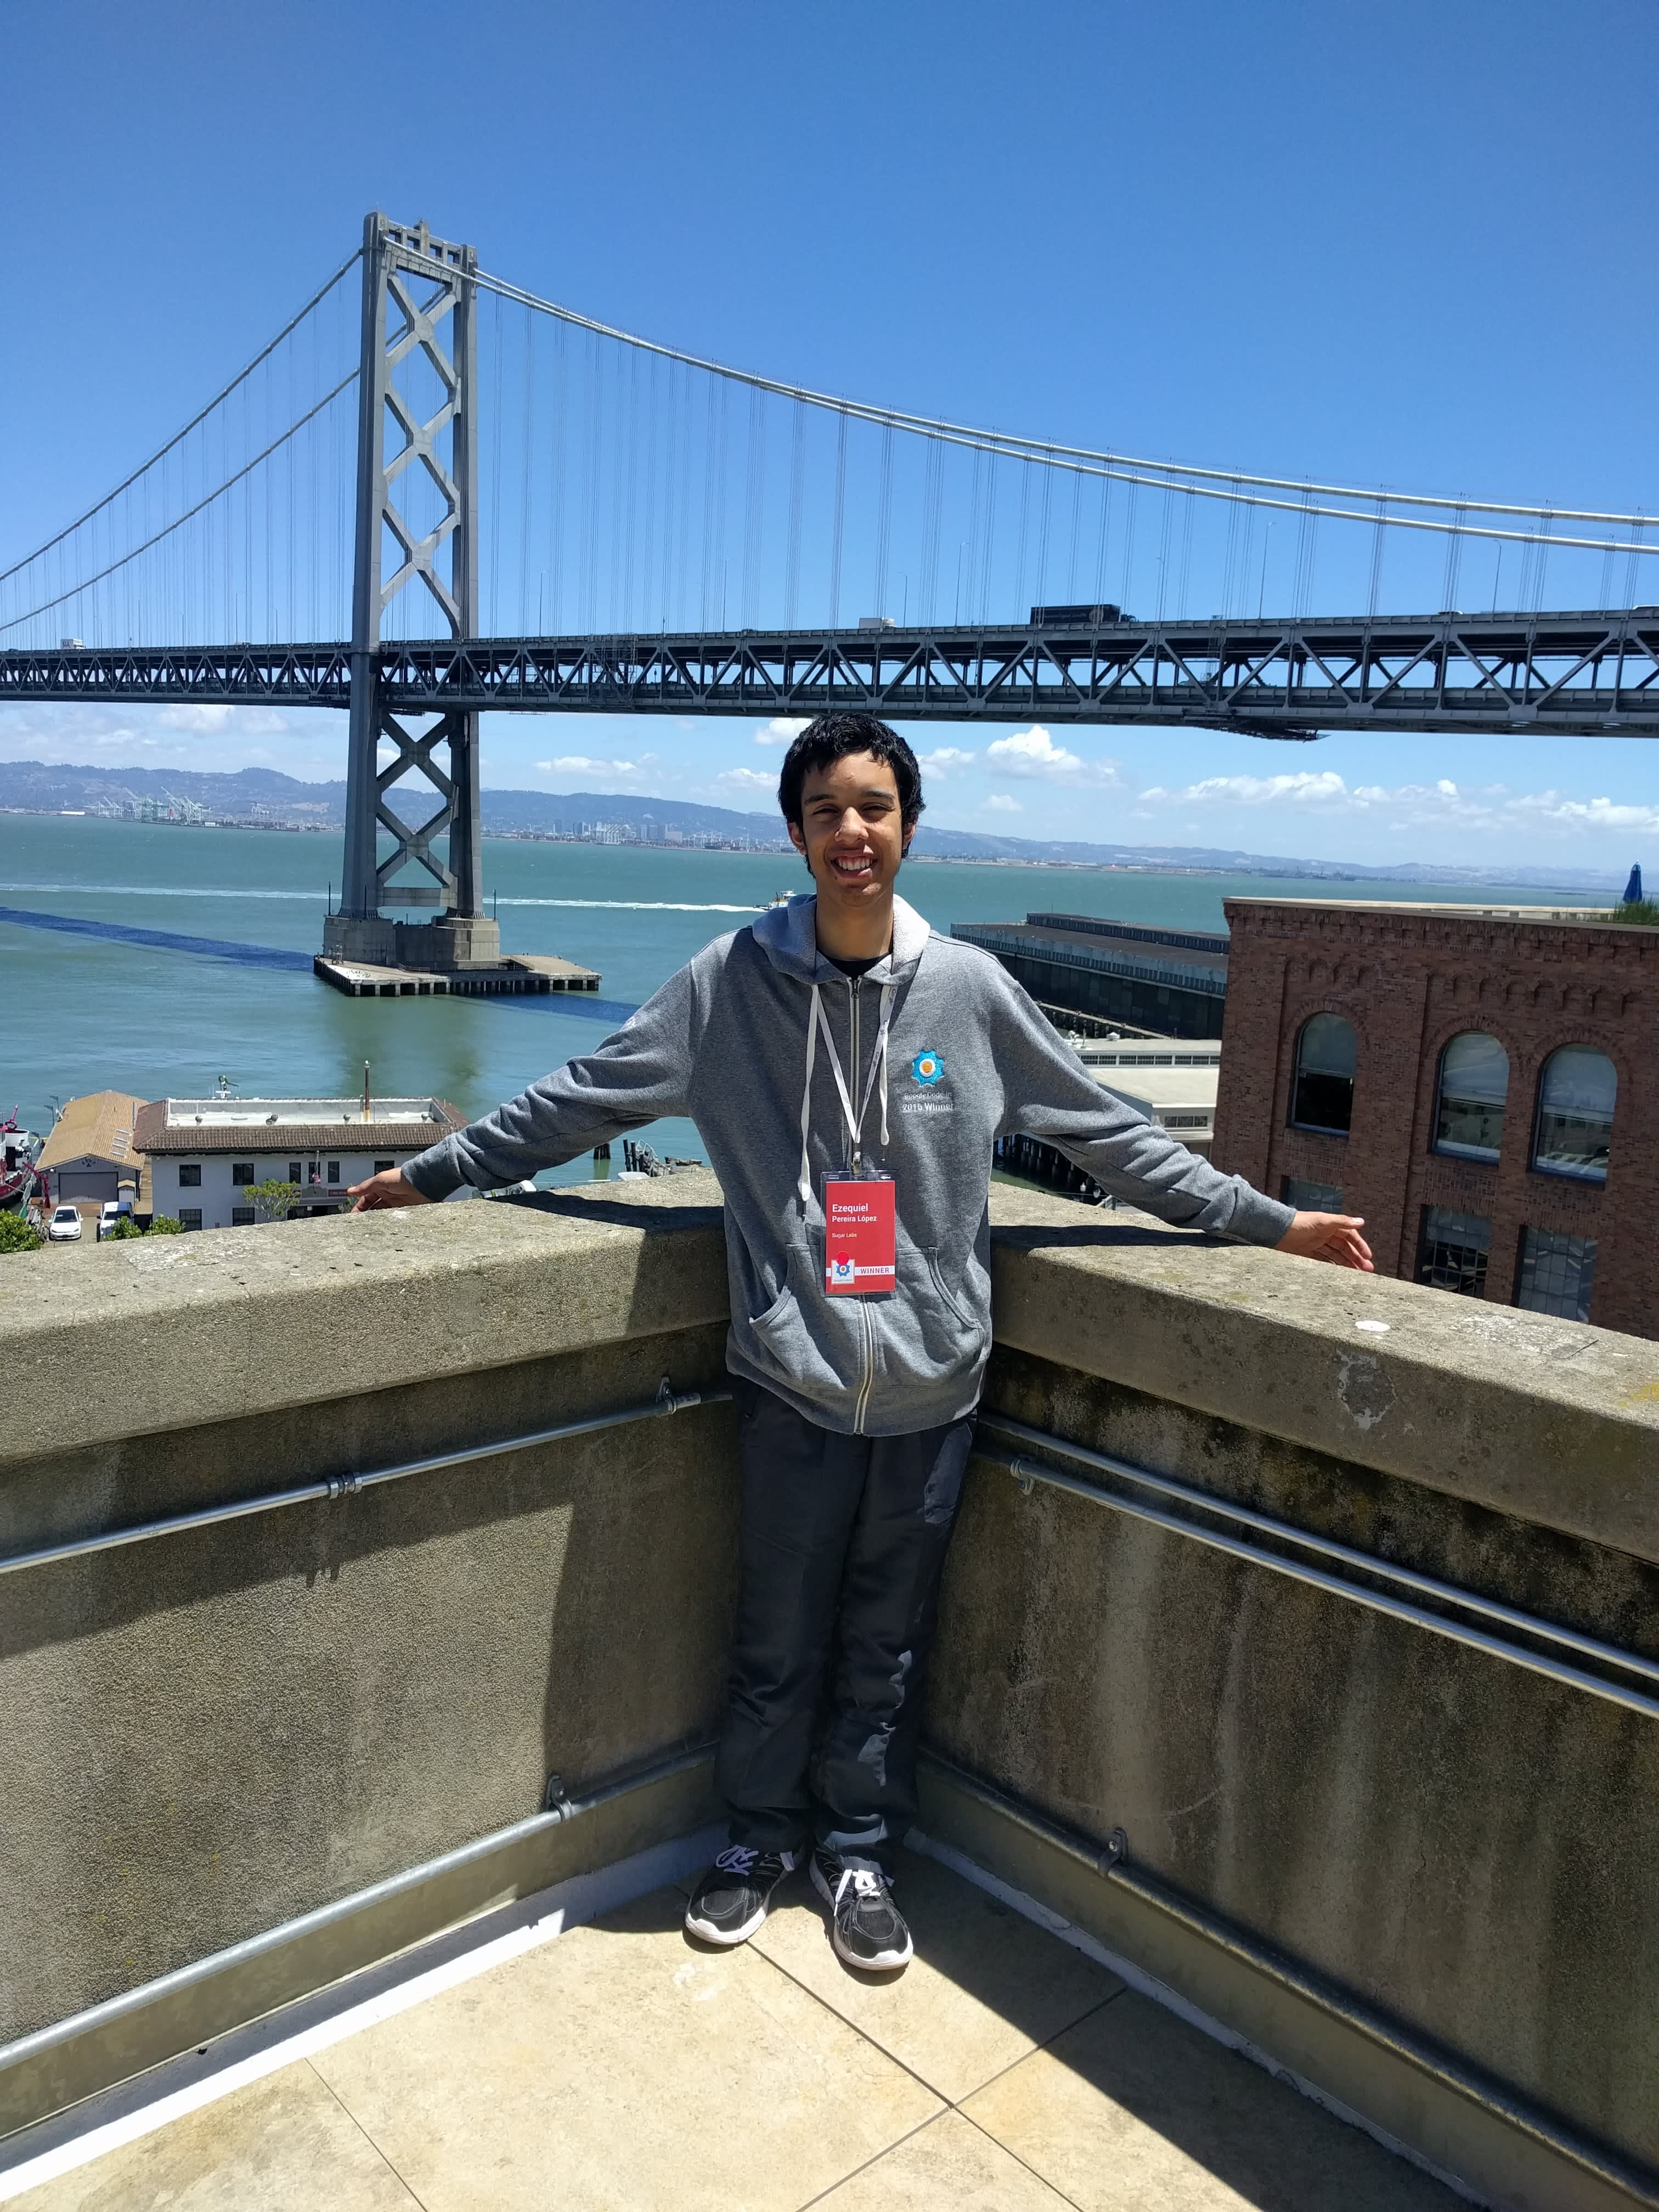 Teenager wins 36k from Google bug bounty program